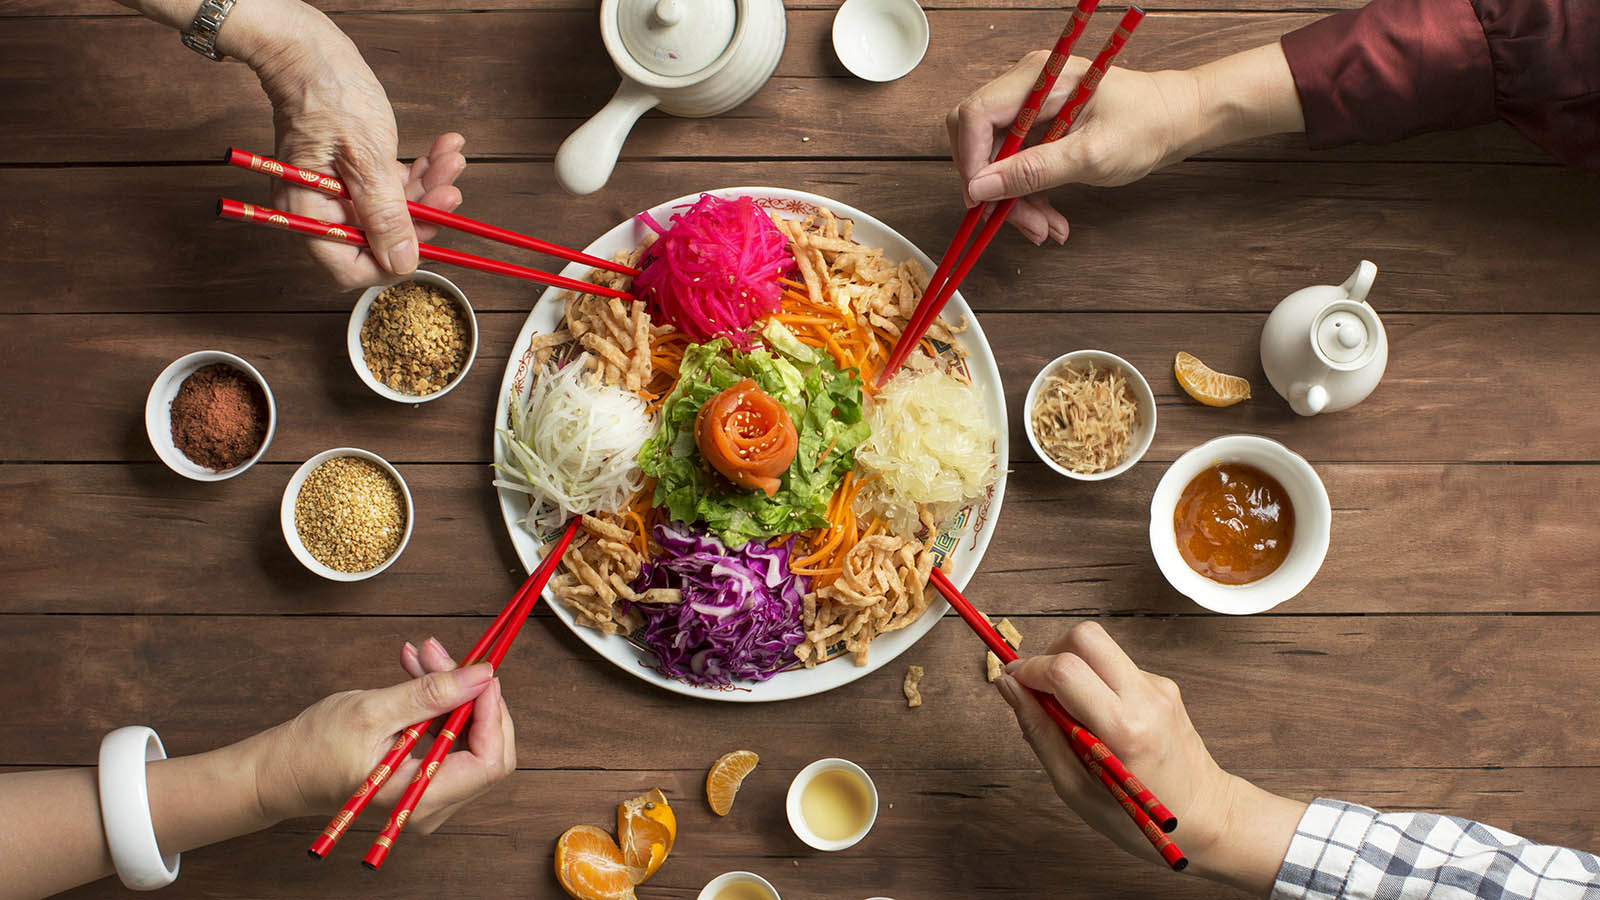 10 chinese new year food superstitions howstuffworks https recipes howstuffworks com 10 chinese new year food superstitions htm